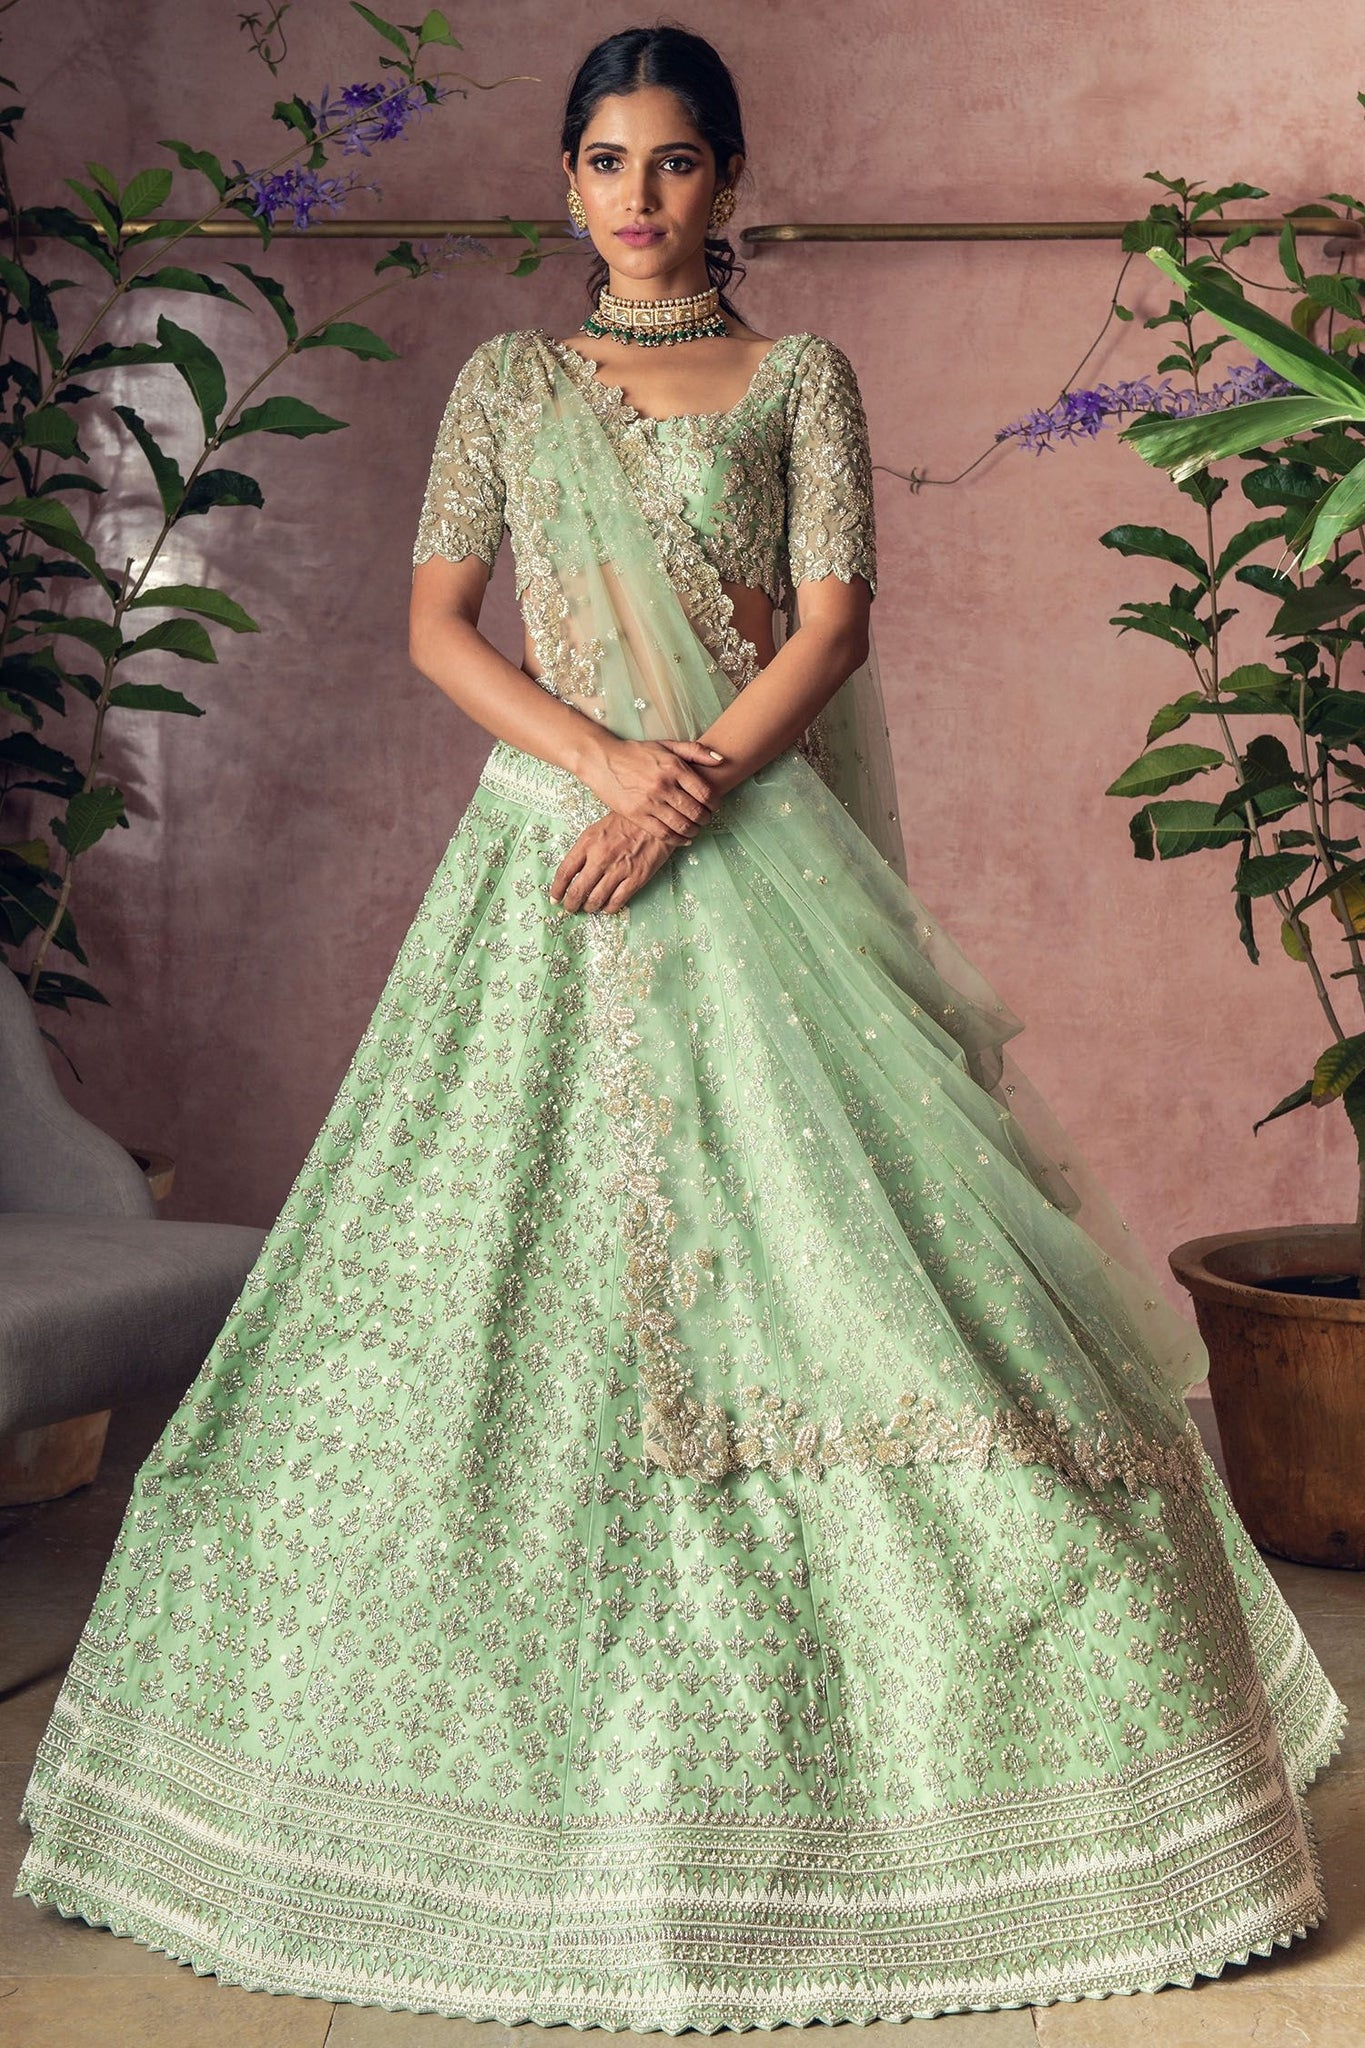 Palegreen Color Attractive Designer Beautiful Bridal Lehenga-Bridal Lehenga Store CMB059